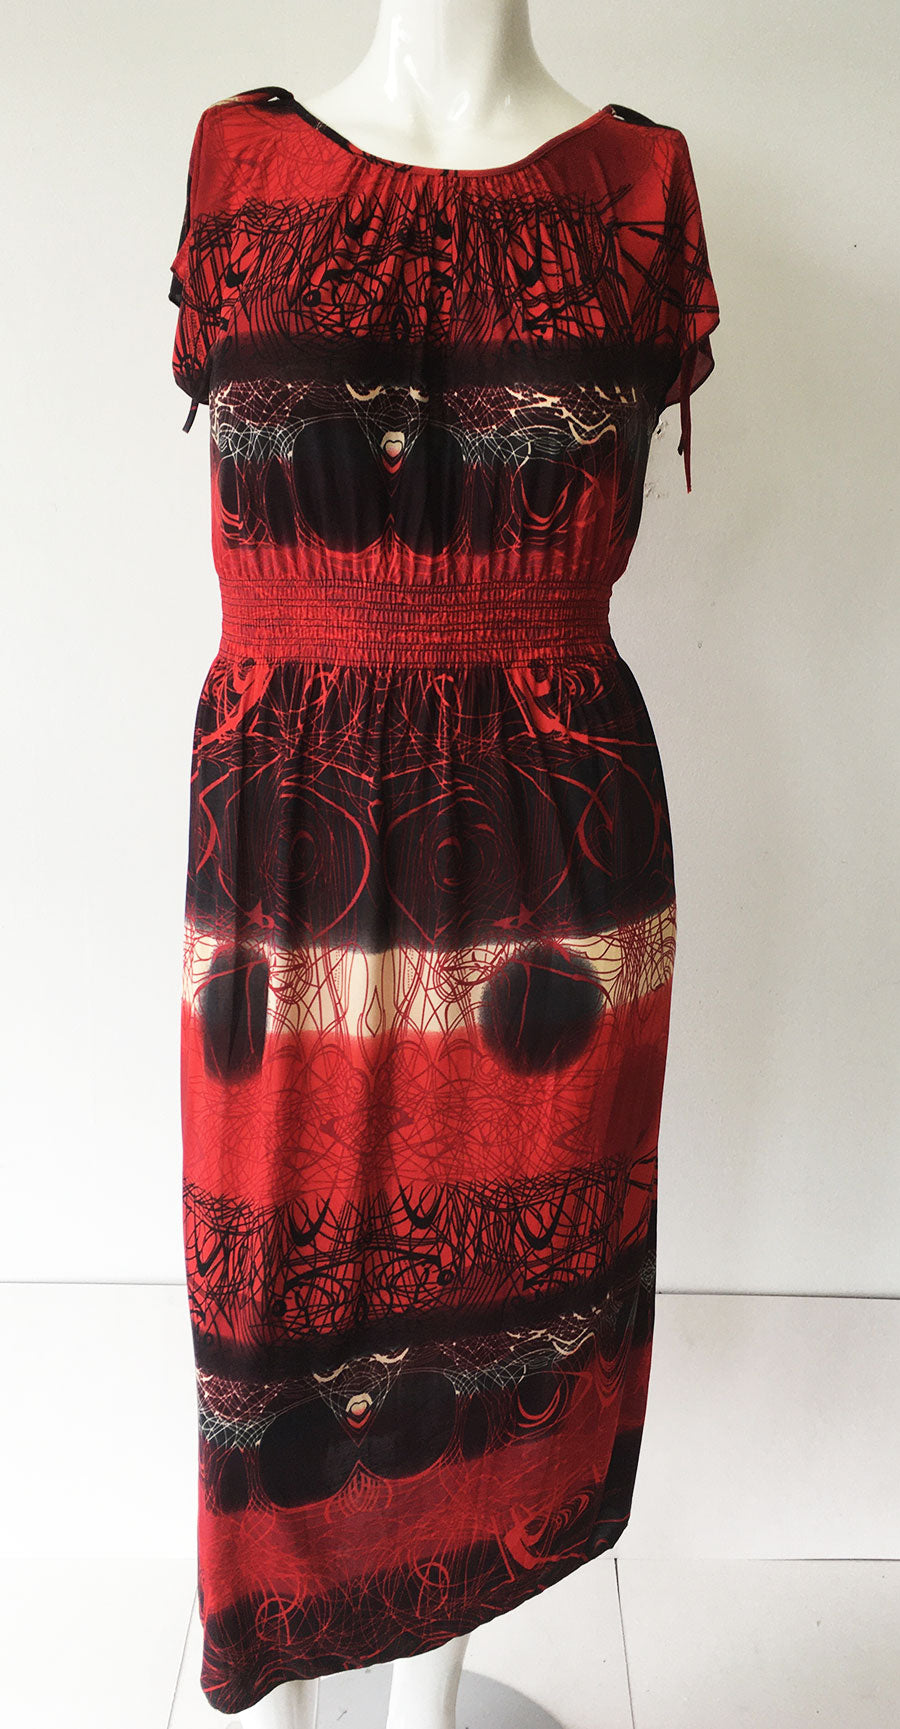 Casual Dress HY2274-Red/Black - Church Suits For Less